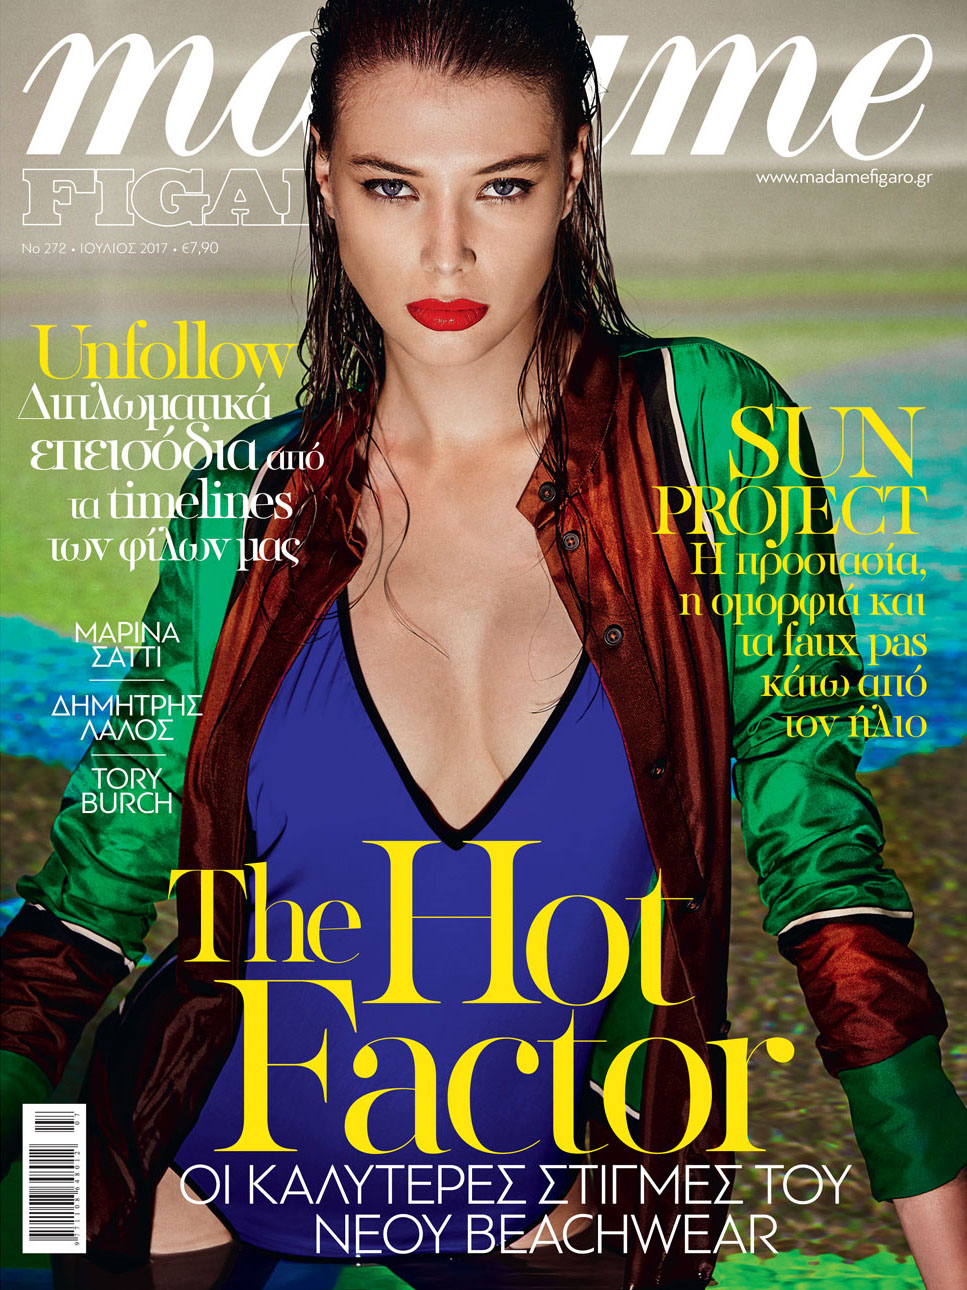 Anastasia on the cover of Madame Figaro.